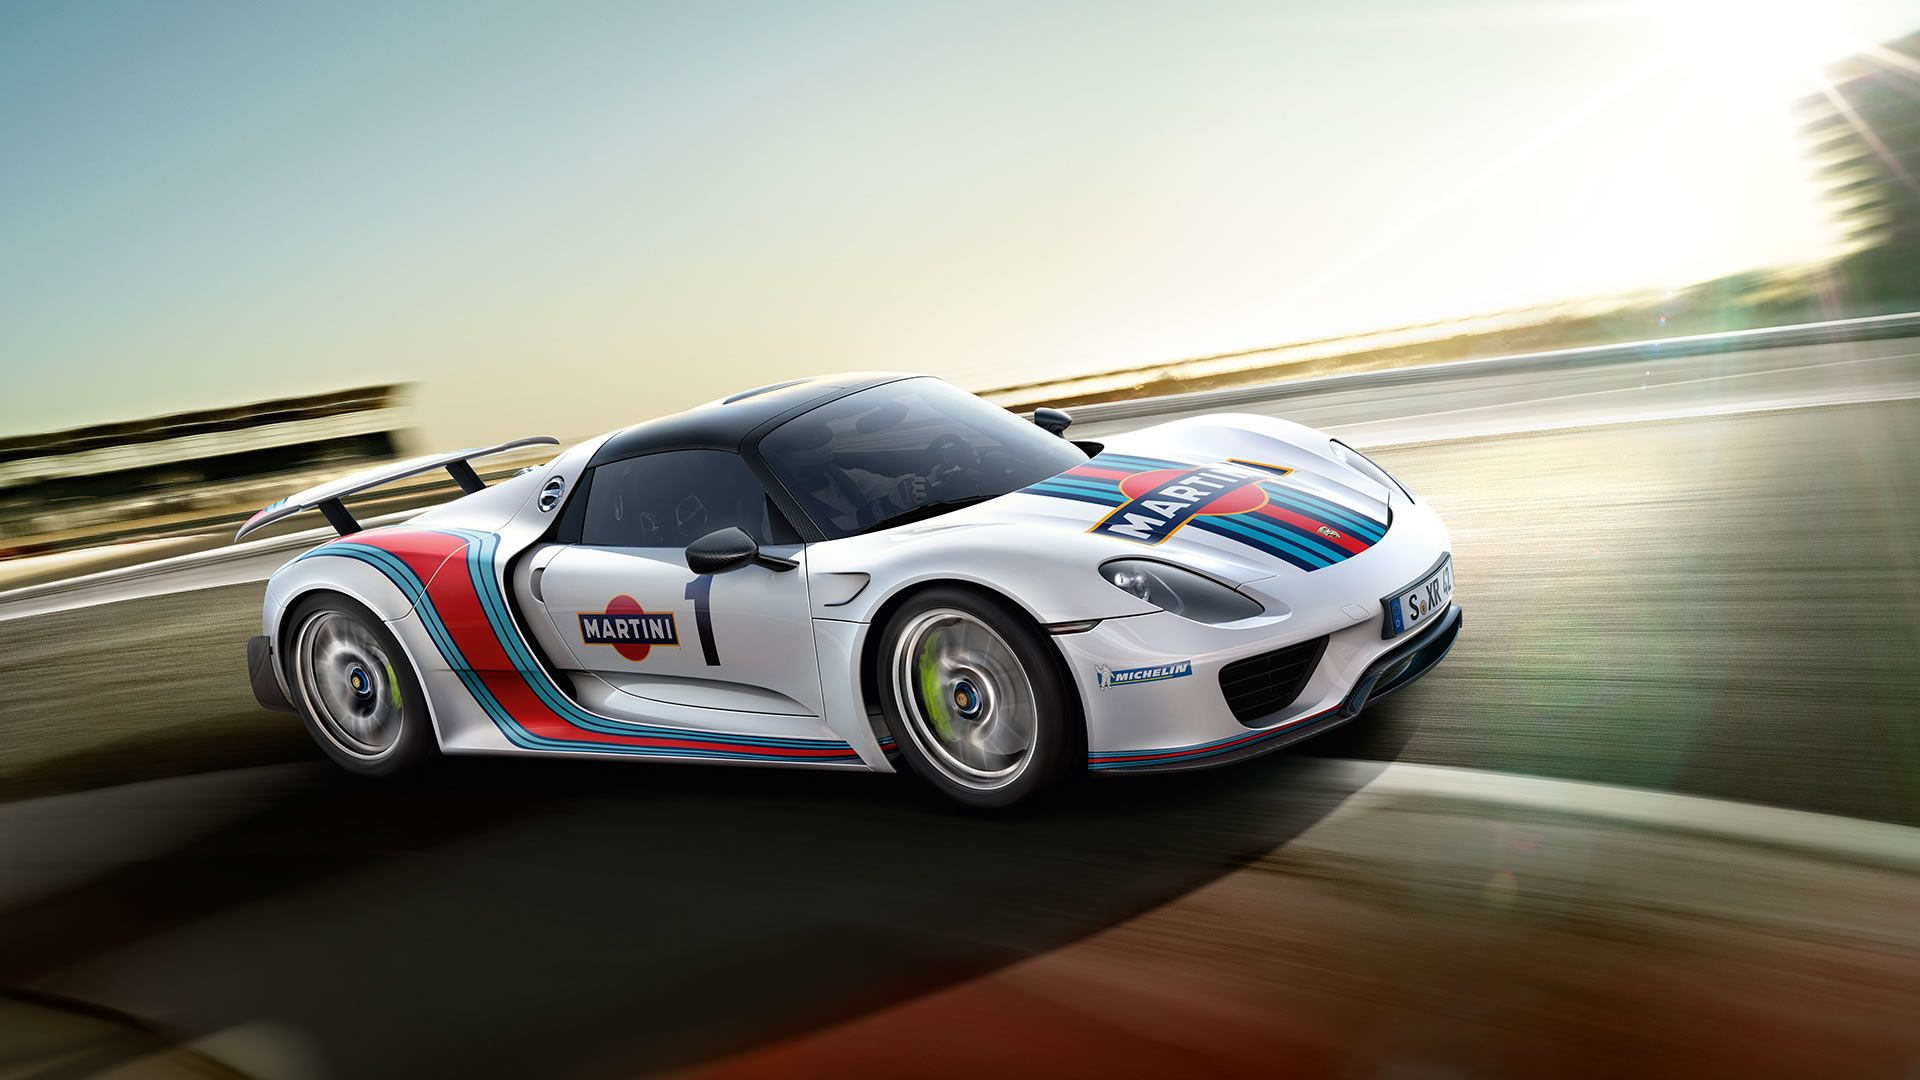 77847aa9ff7f7d04875174c7bcf675ea Fabulous How Much Does the Porsche 918 Spyder Concept Cost In Real Racing 3 Cars Trend